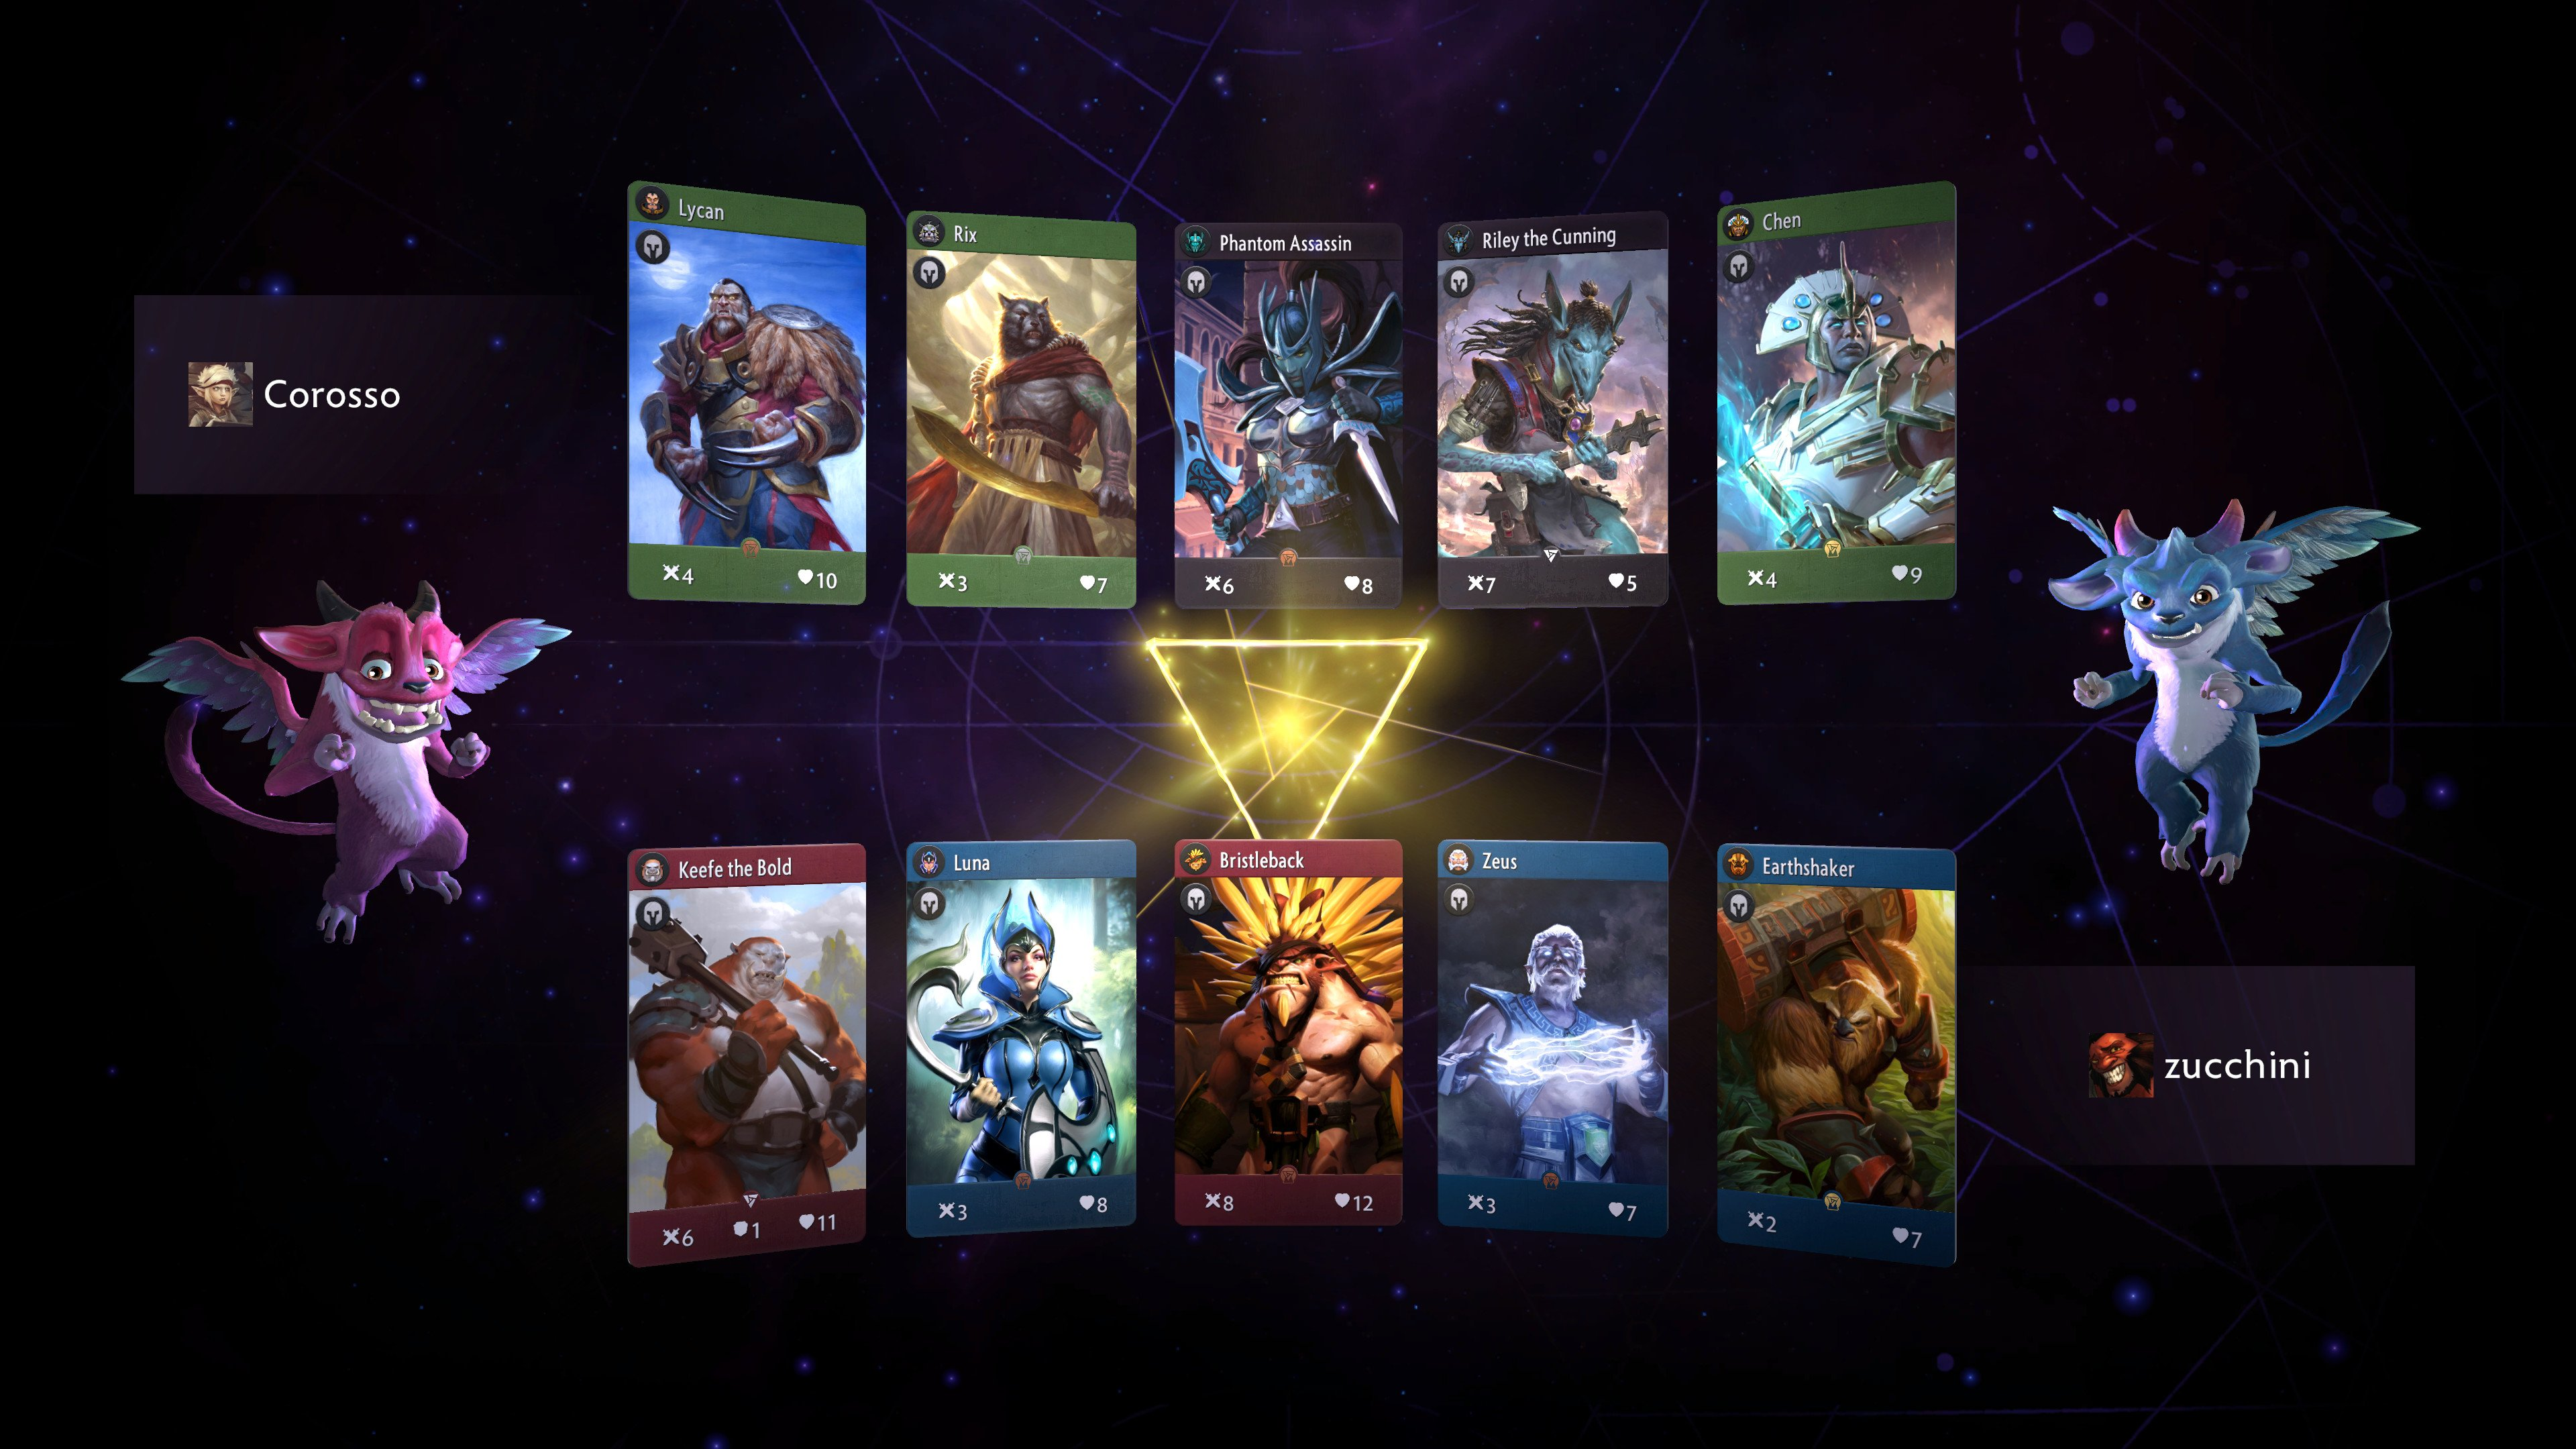 Artifact review: The MOBA of card games | Shacknews